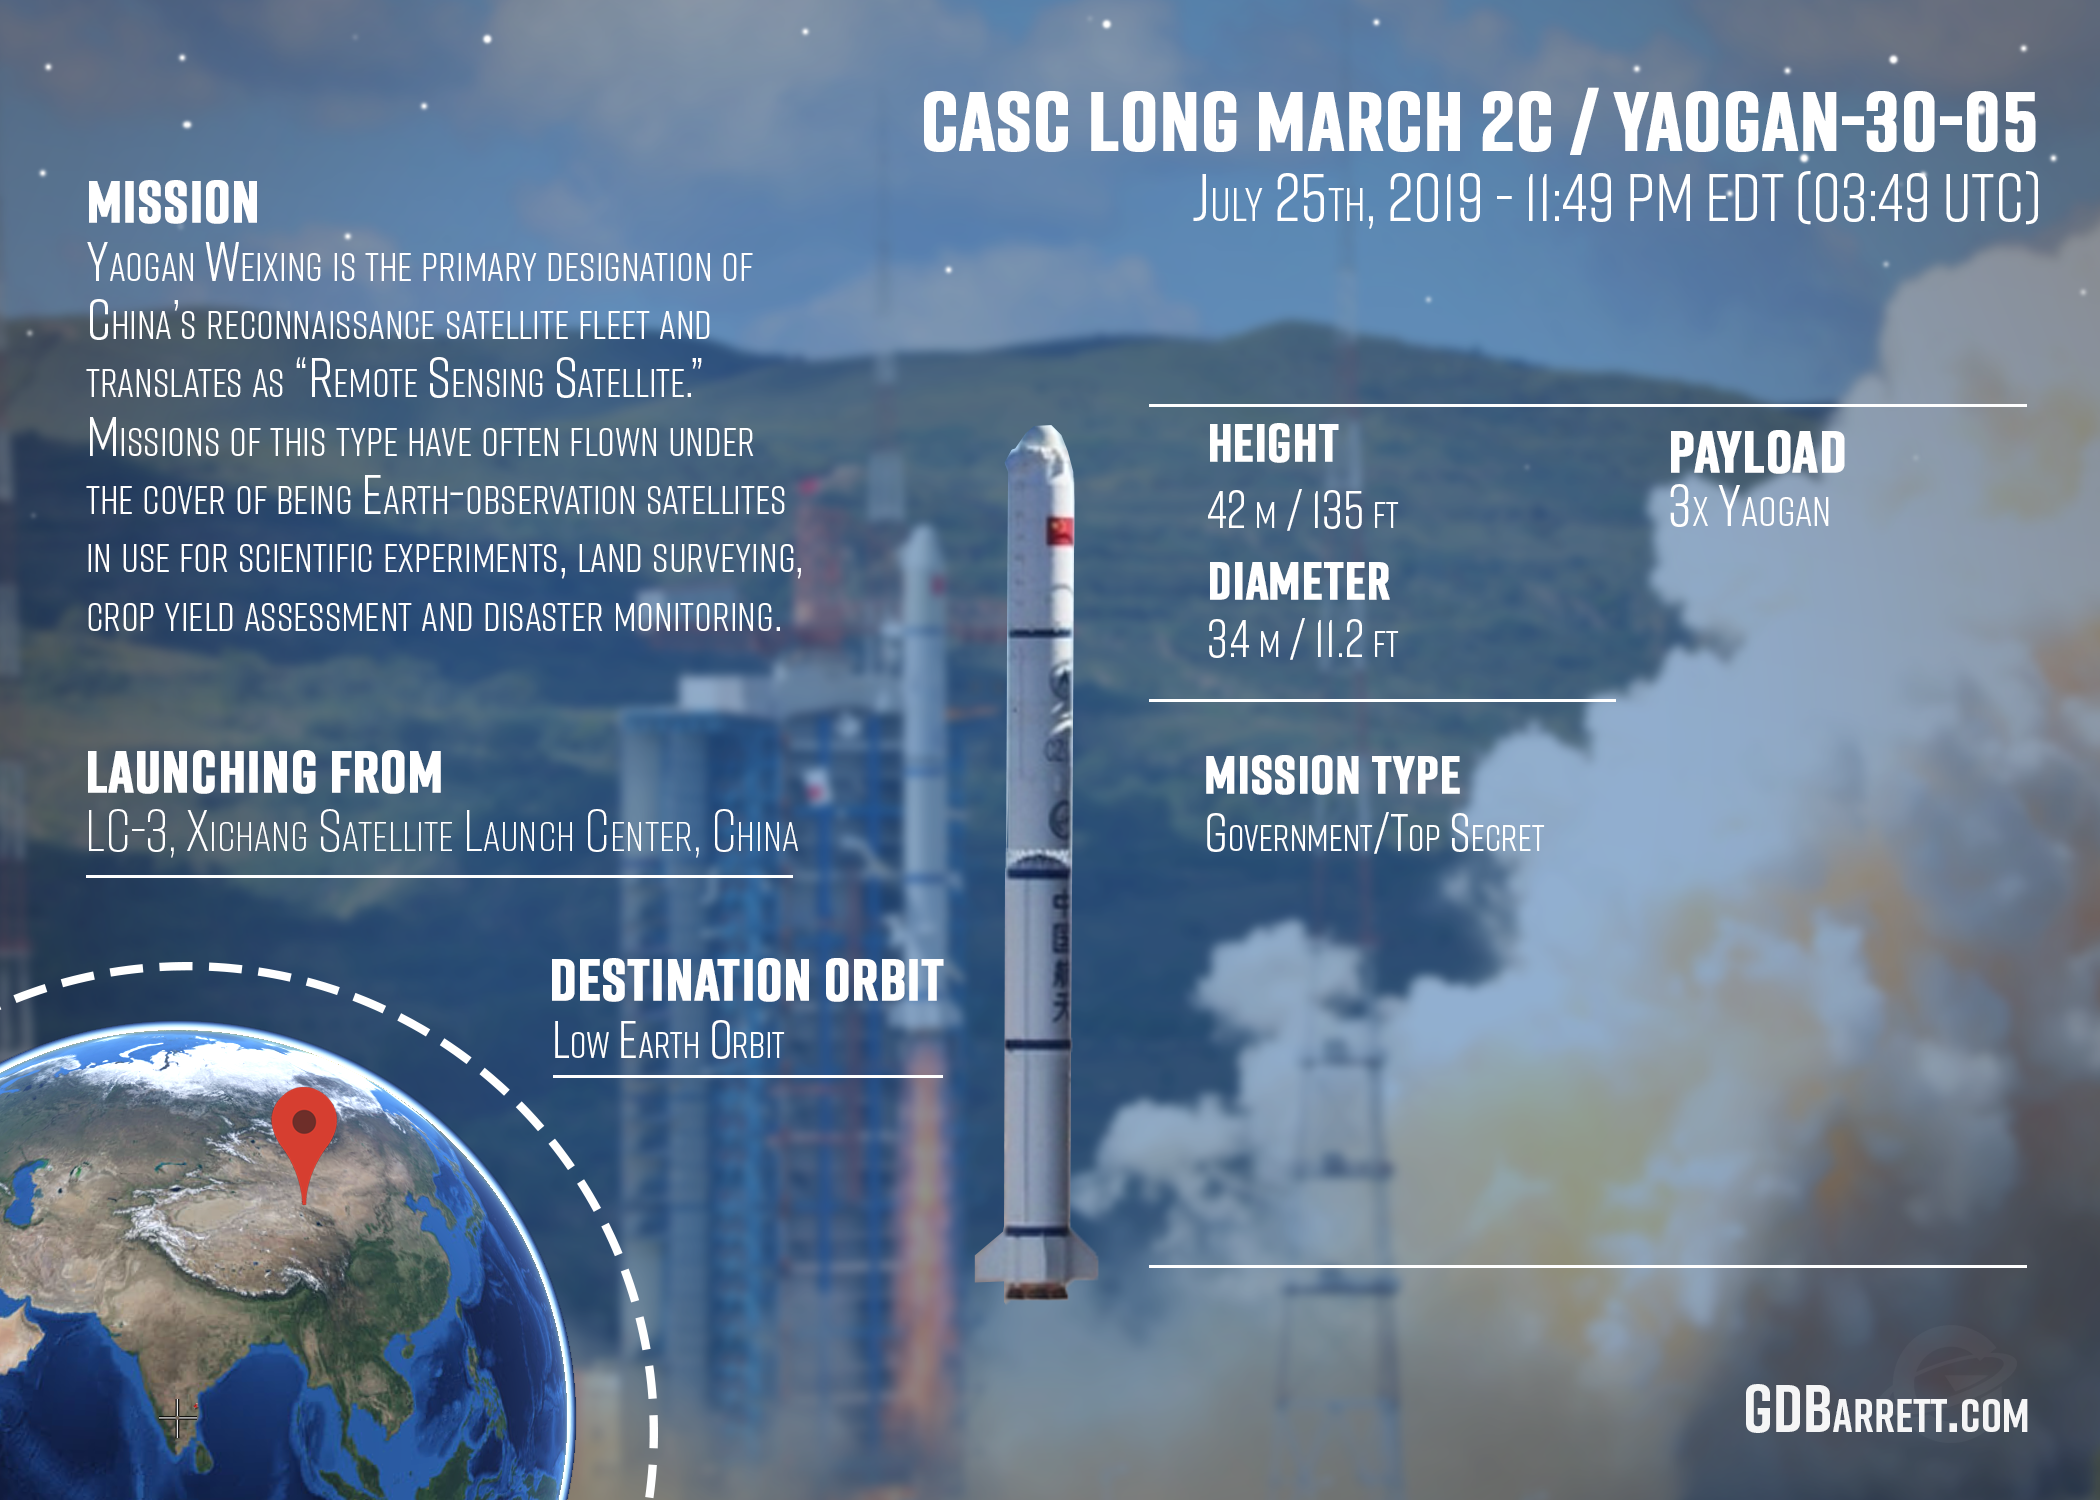 CASC Long March 2C / Yaogan-30-05